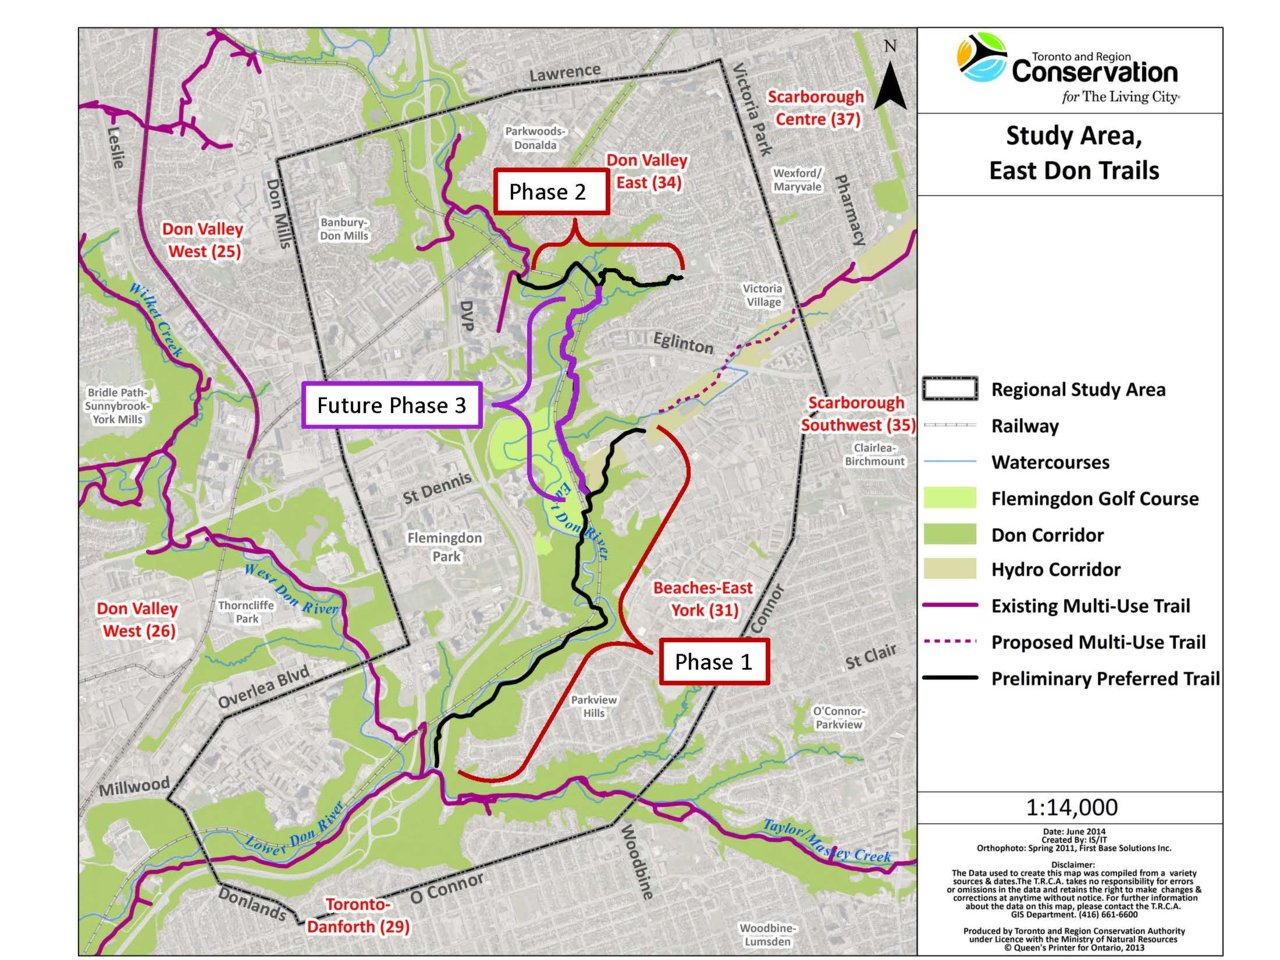 East Don Trail Project | UrbanToronto